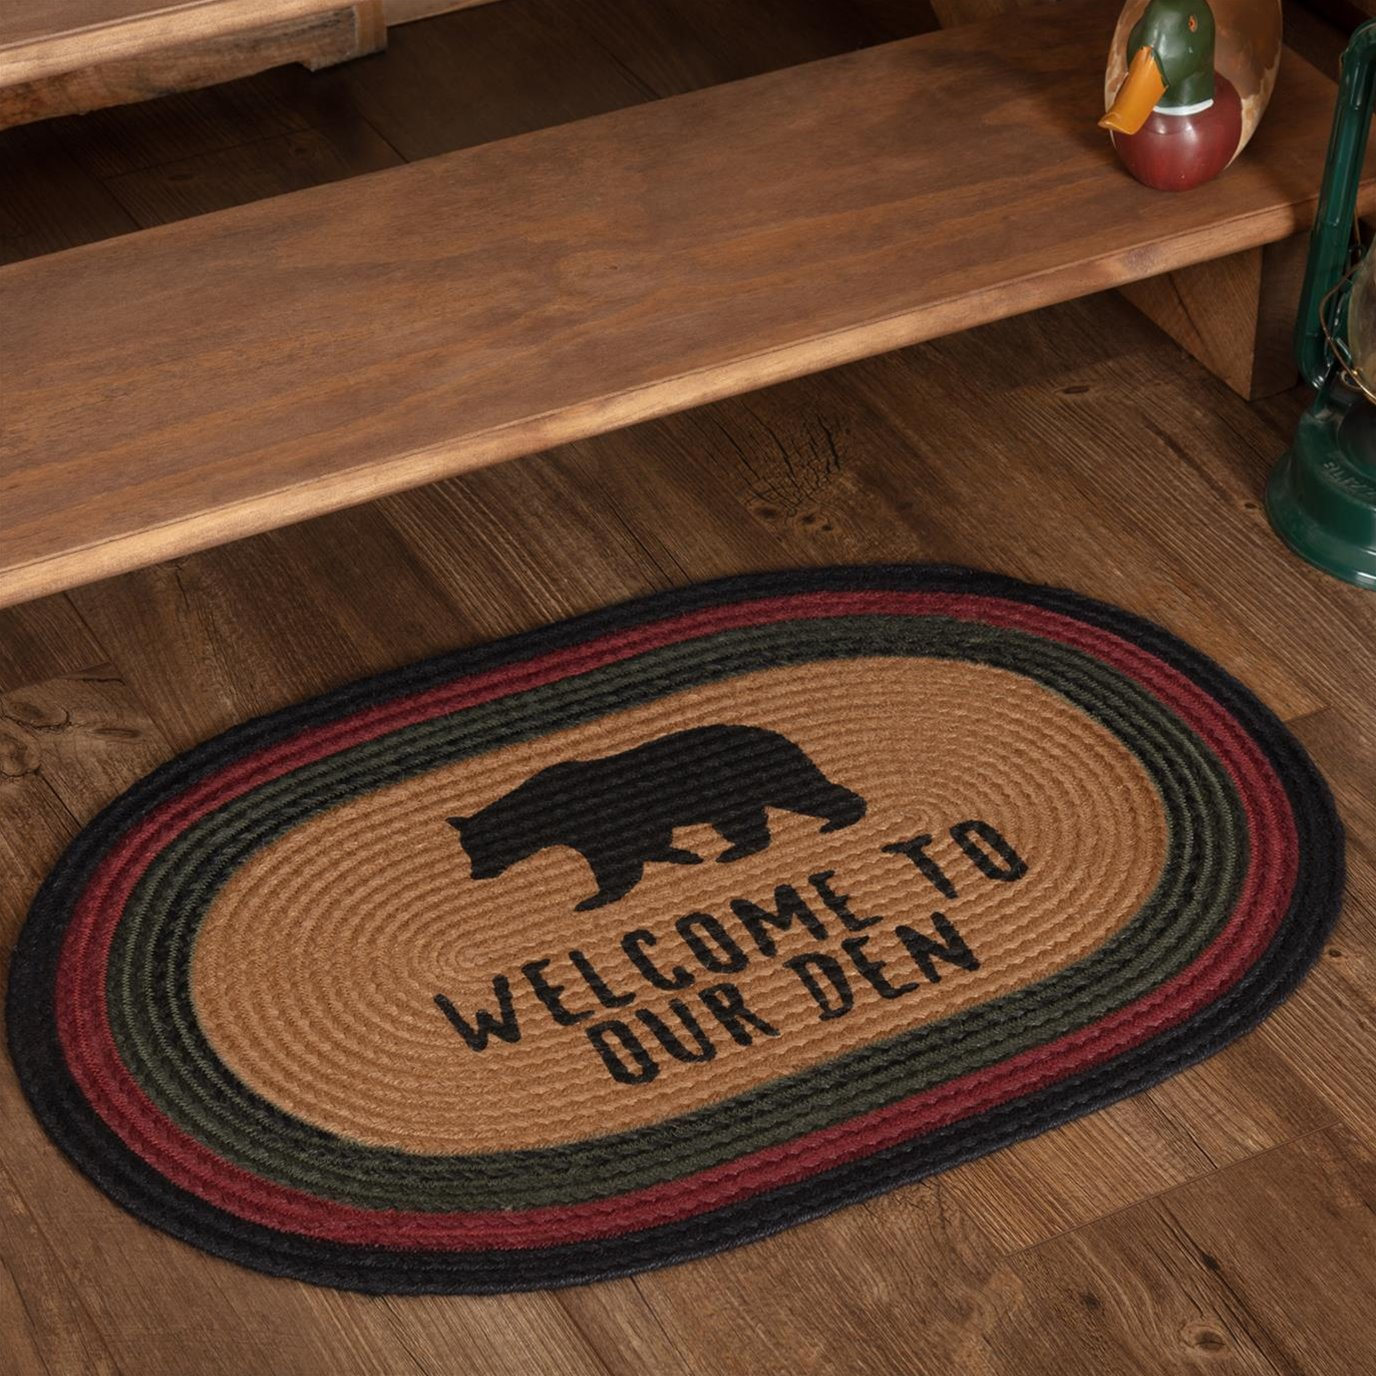 Wyatt Stenciled Bear Jute Rug Oval Welcome to Our Den 20x30